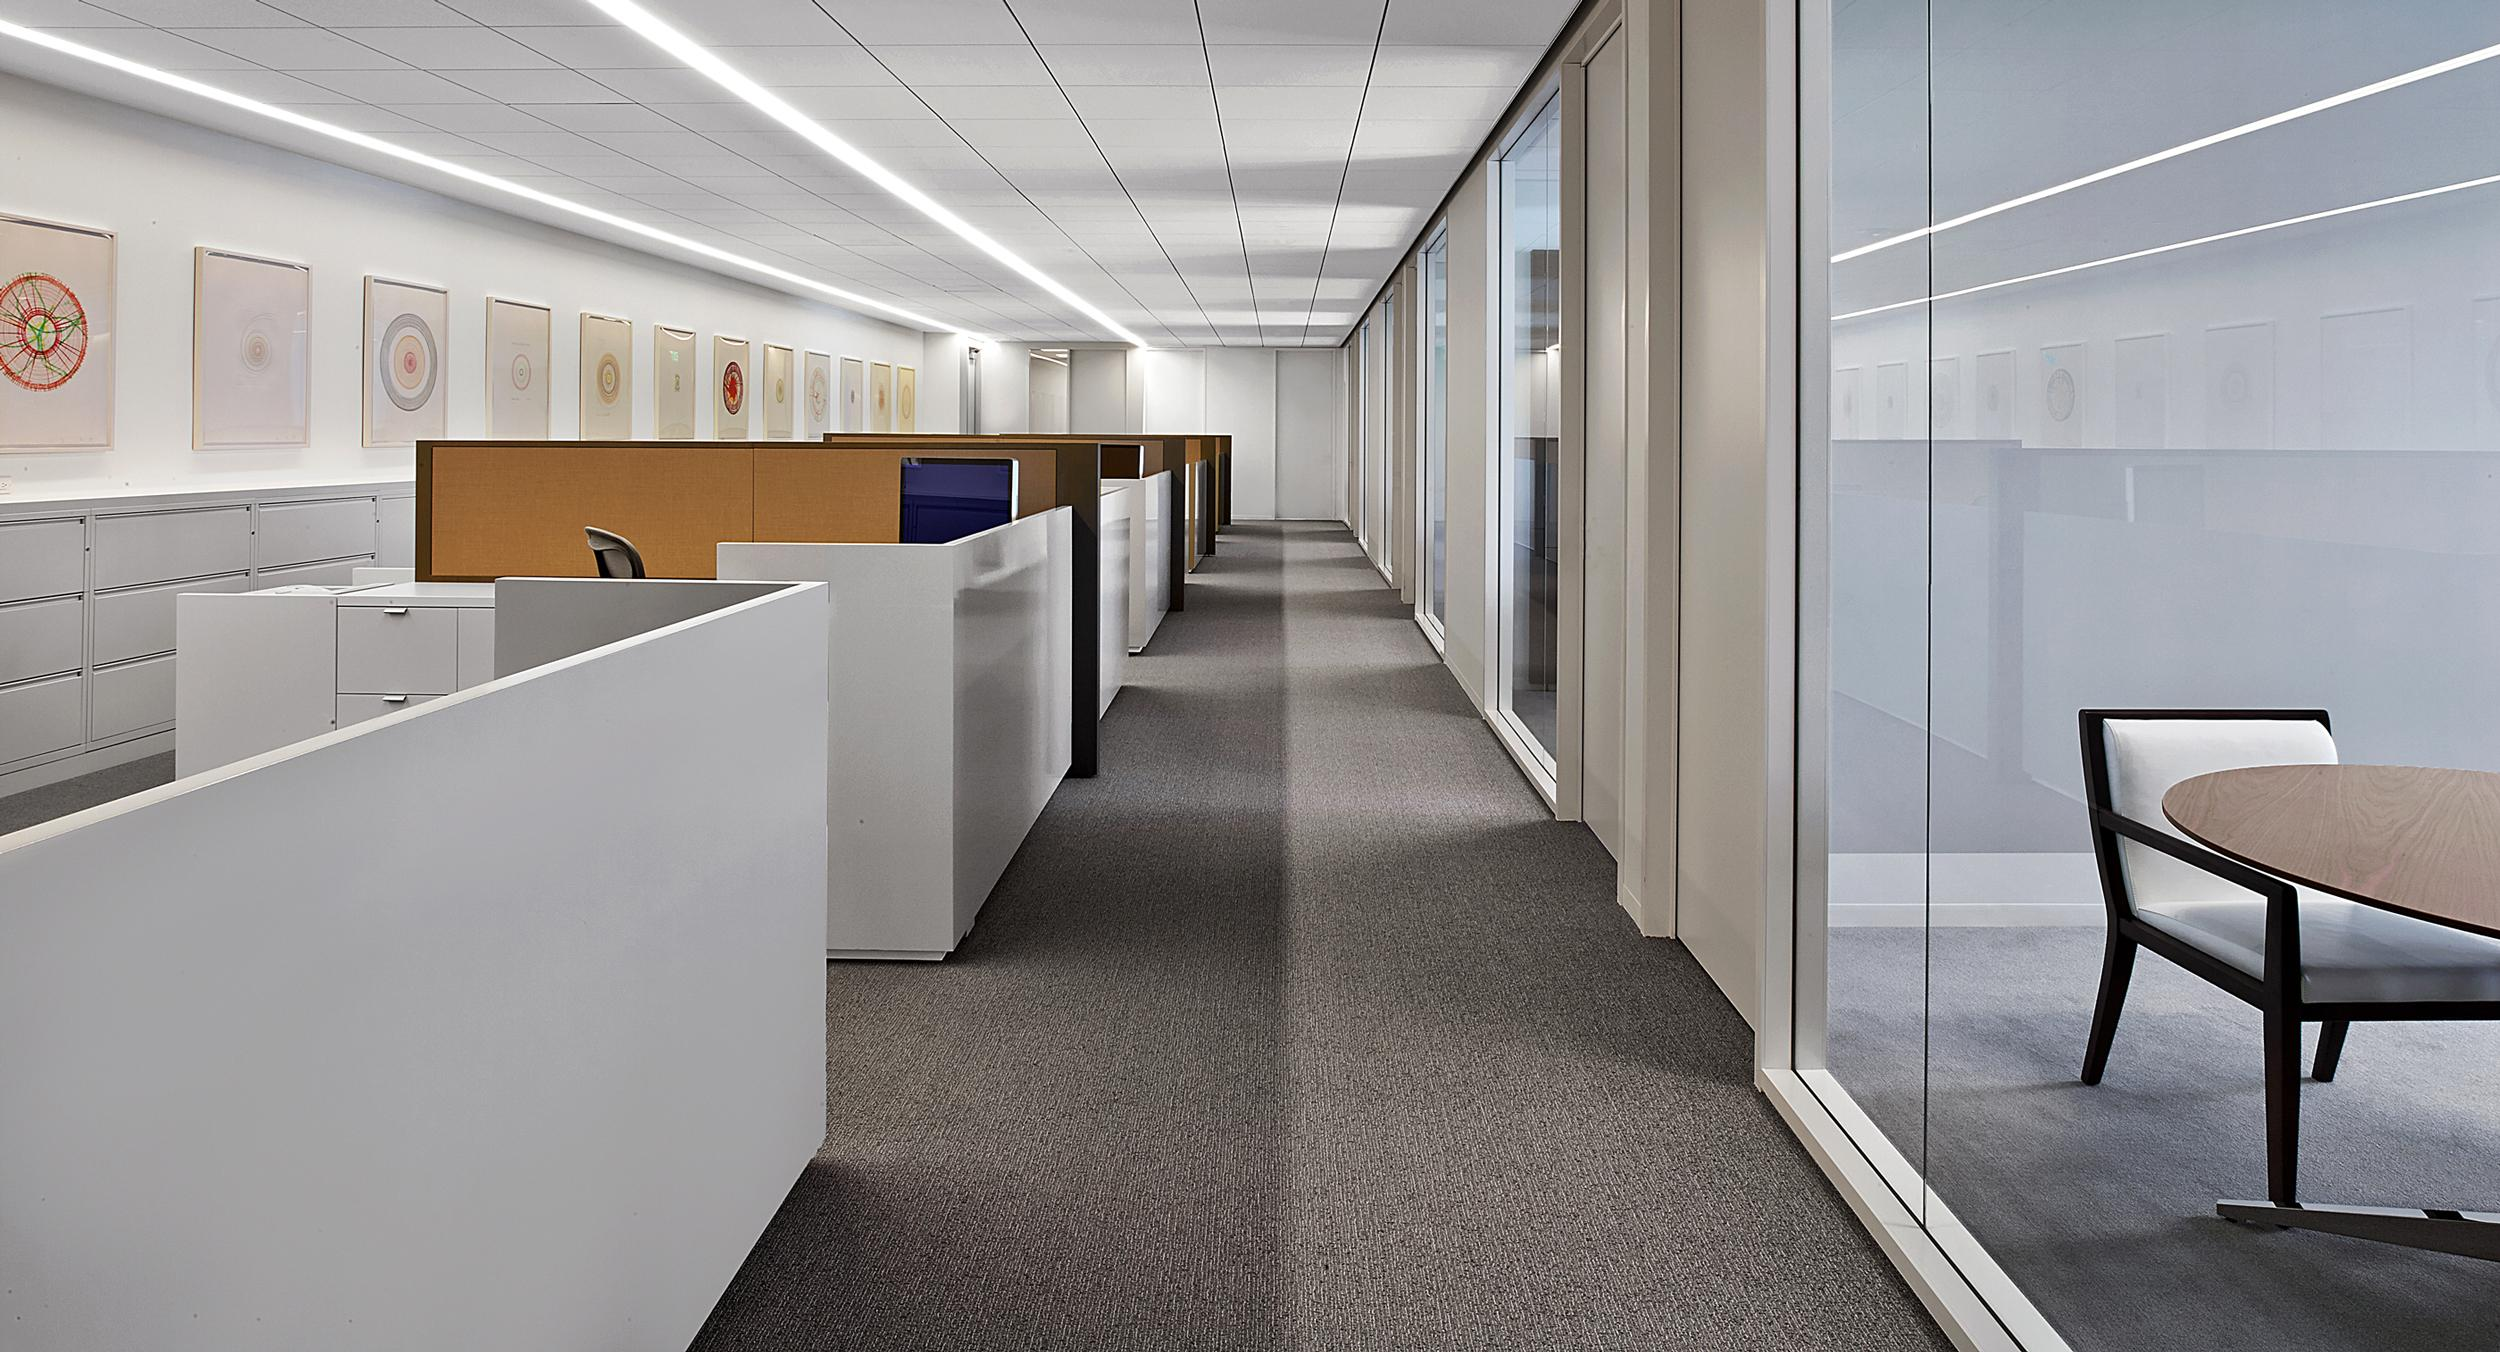 White Chemcolor surround panels convey clean, modern lines.